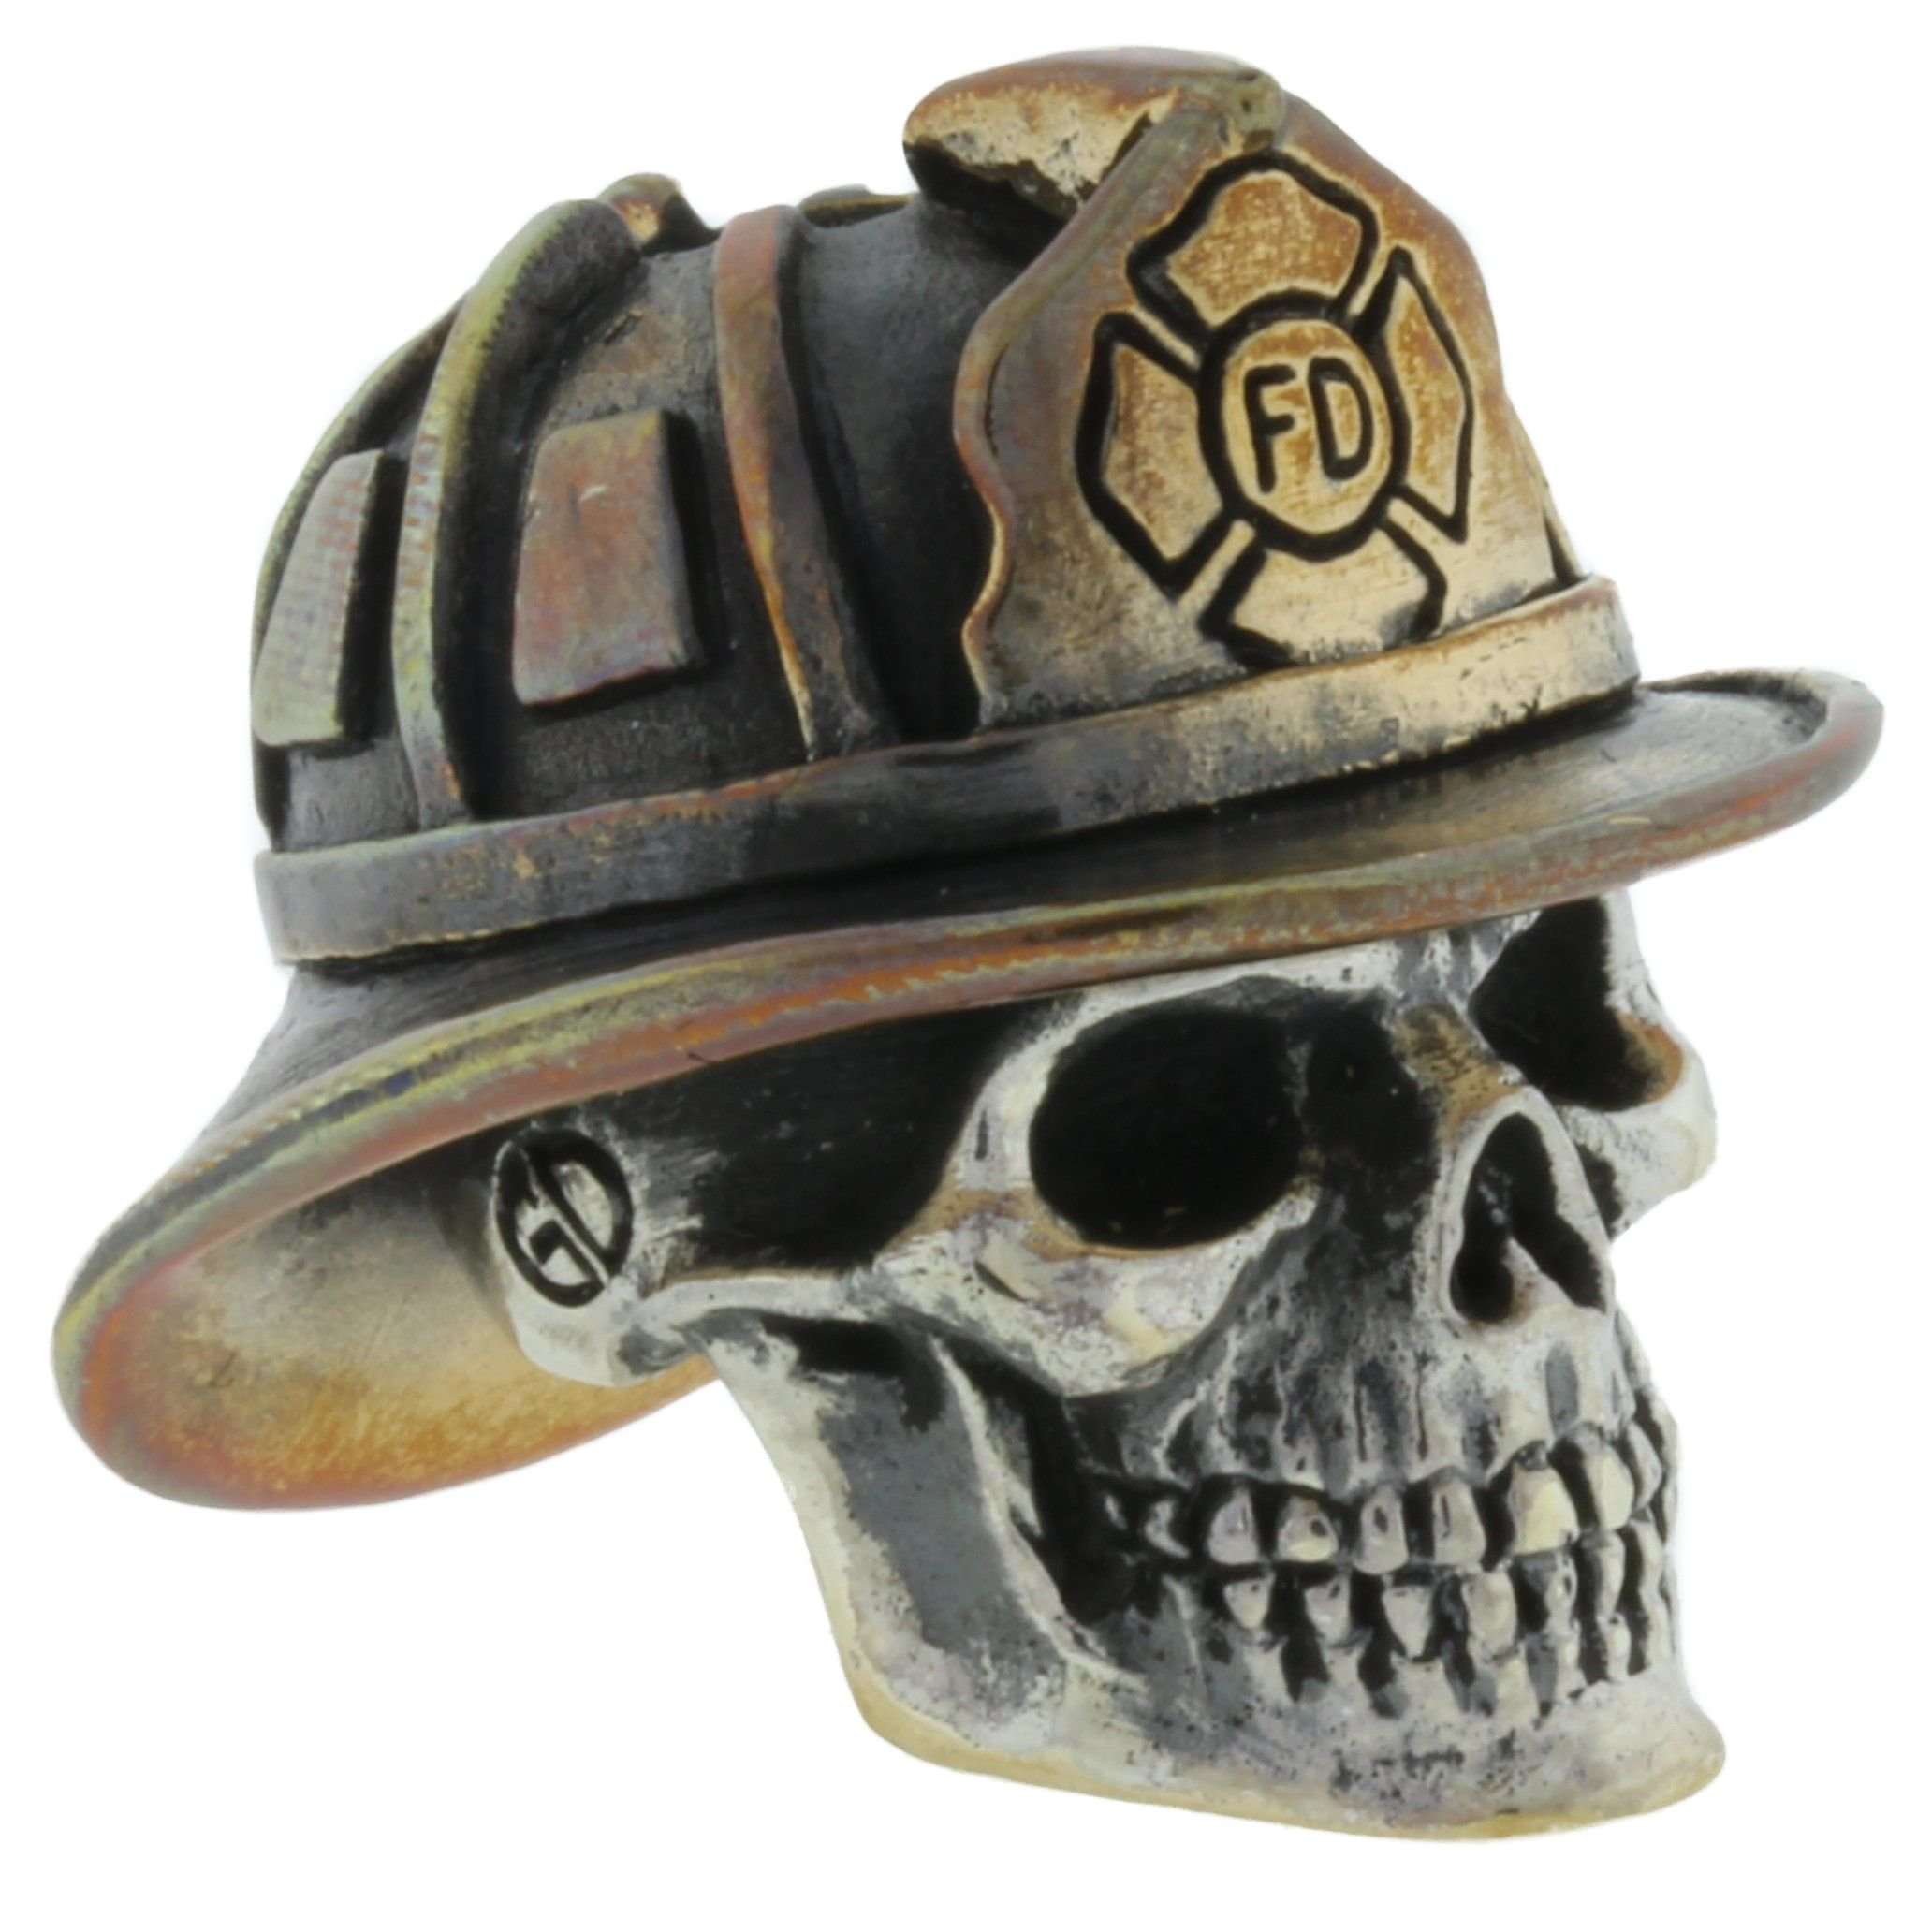 Firefighter Paracord / Lanyard Bead in .925 Sterling Silver & Bronze by GD Skulls by Jig Pro Shop